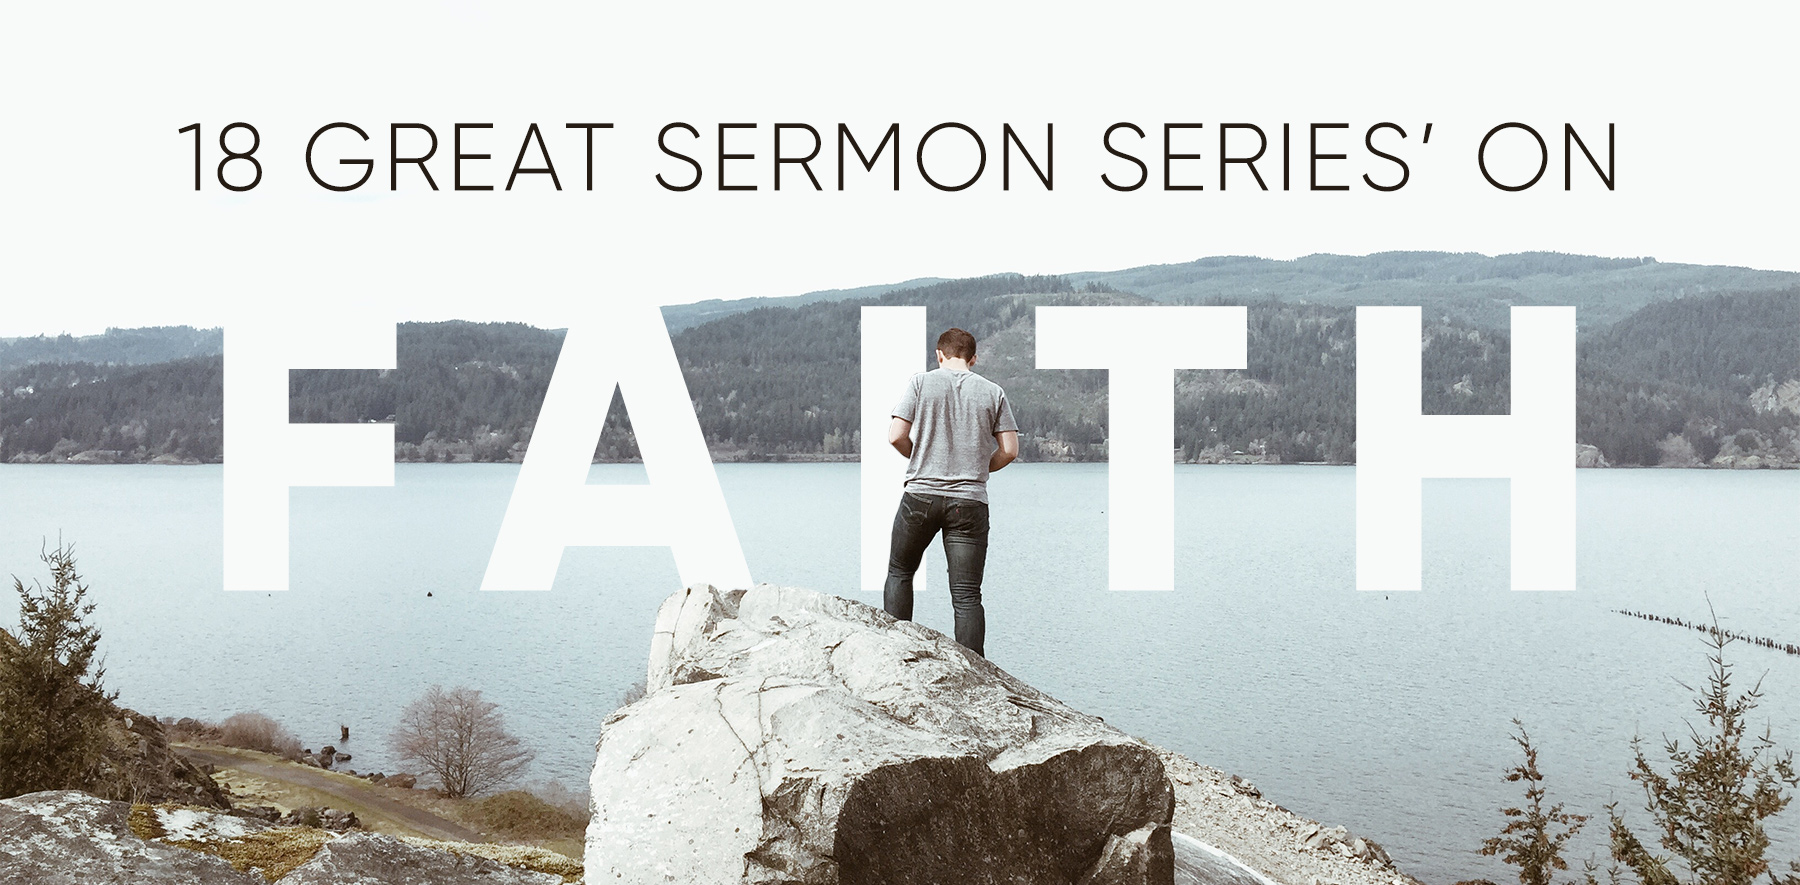 18 Great Sermon Series' on Faith – Church Sermon Series Ideas